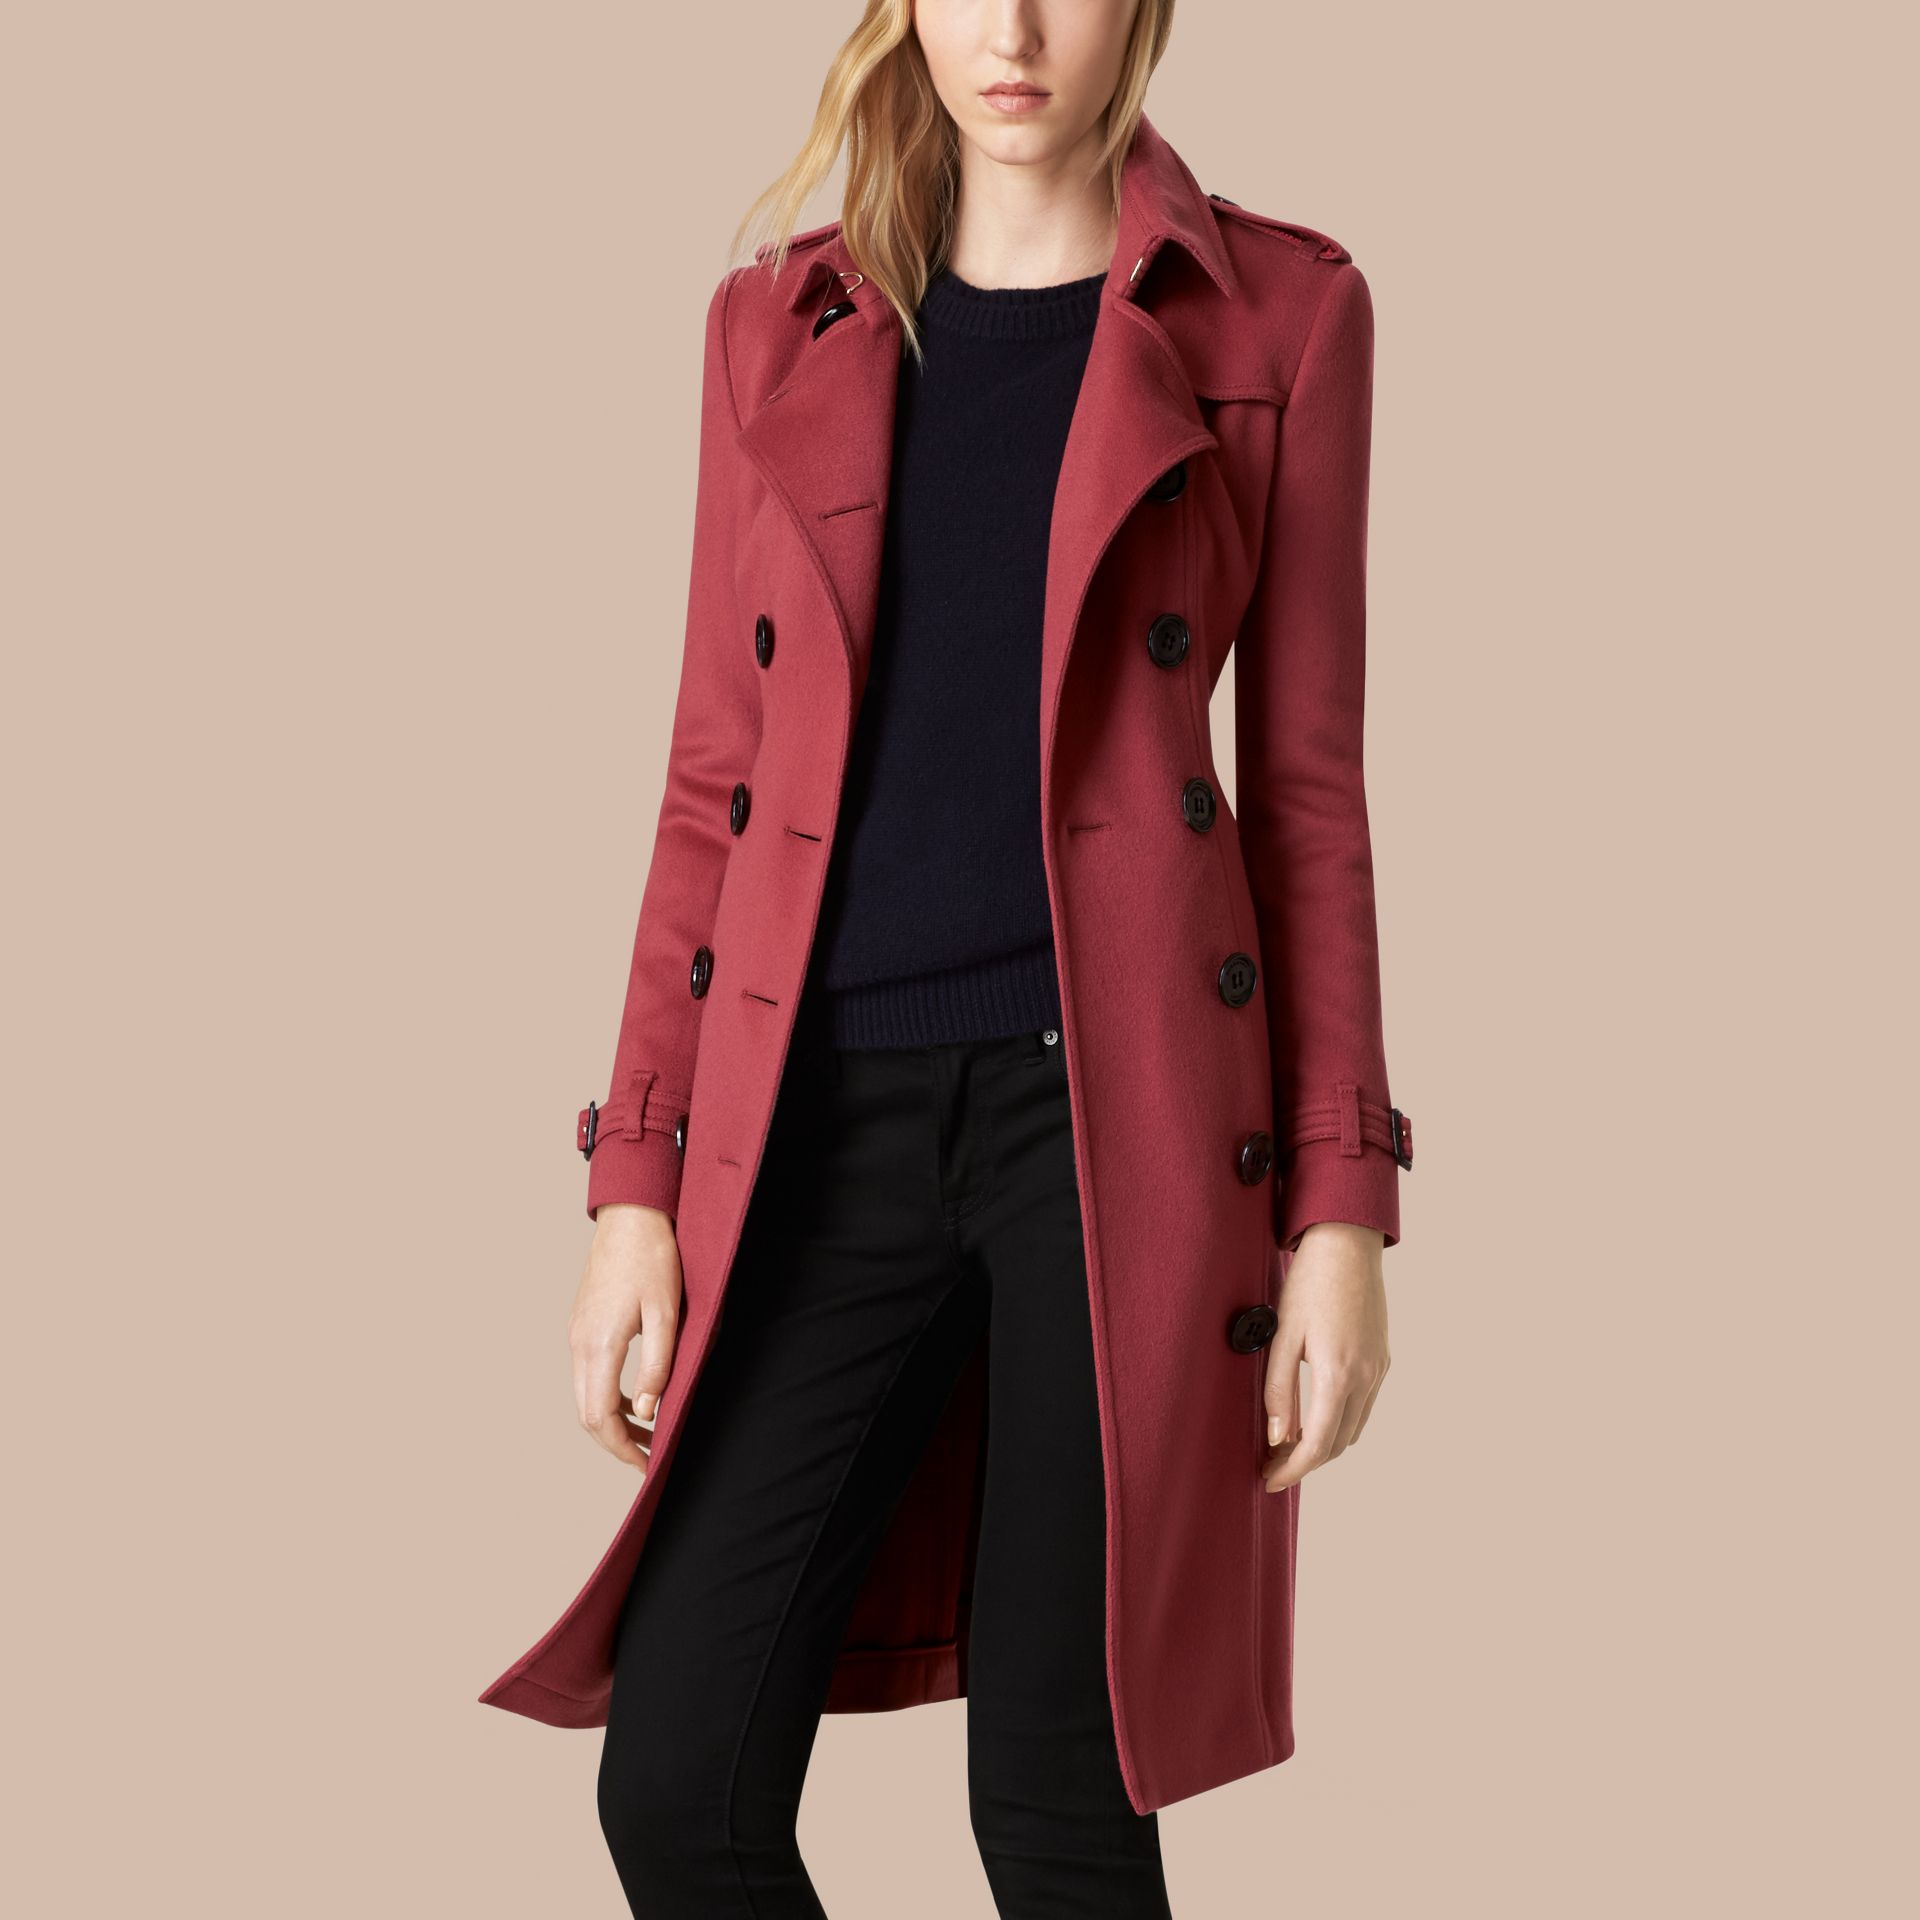 Dusty peony rose Sandringham Fit Cashmere Trench Coat Dusty Peony Rose - gallery image 6